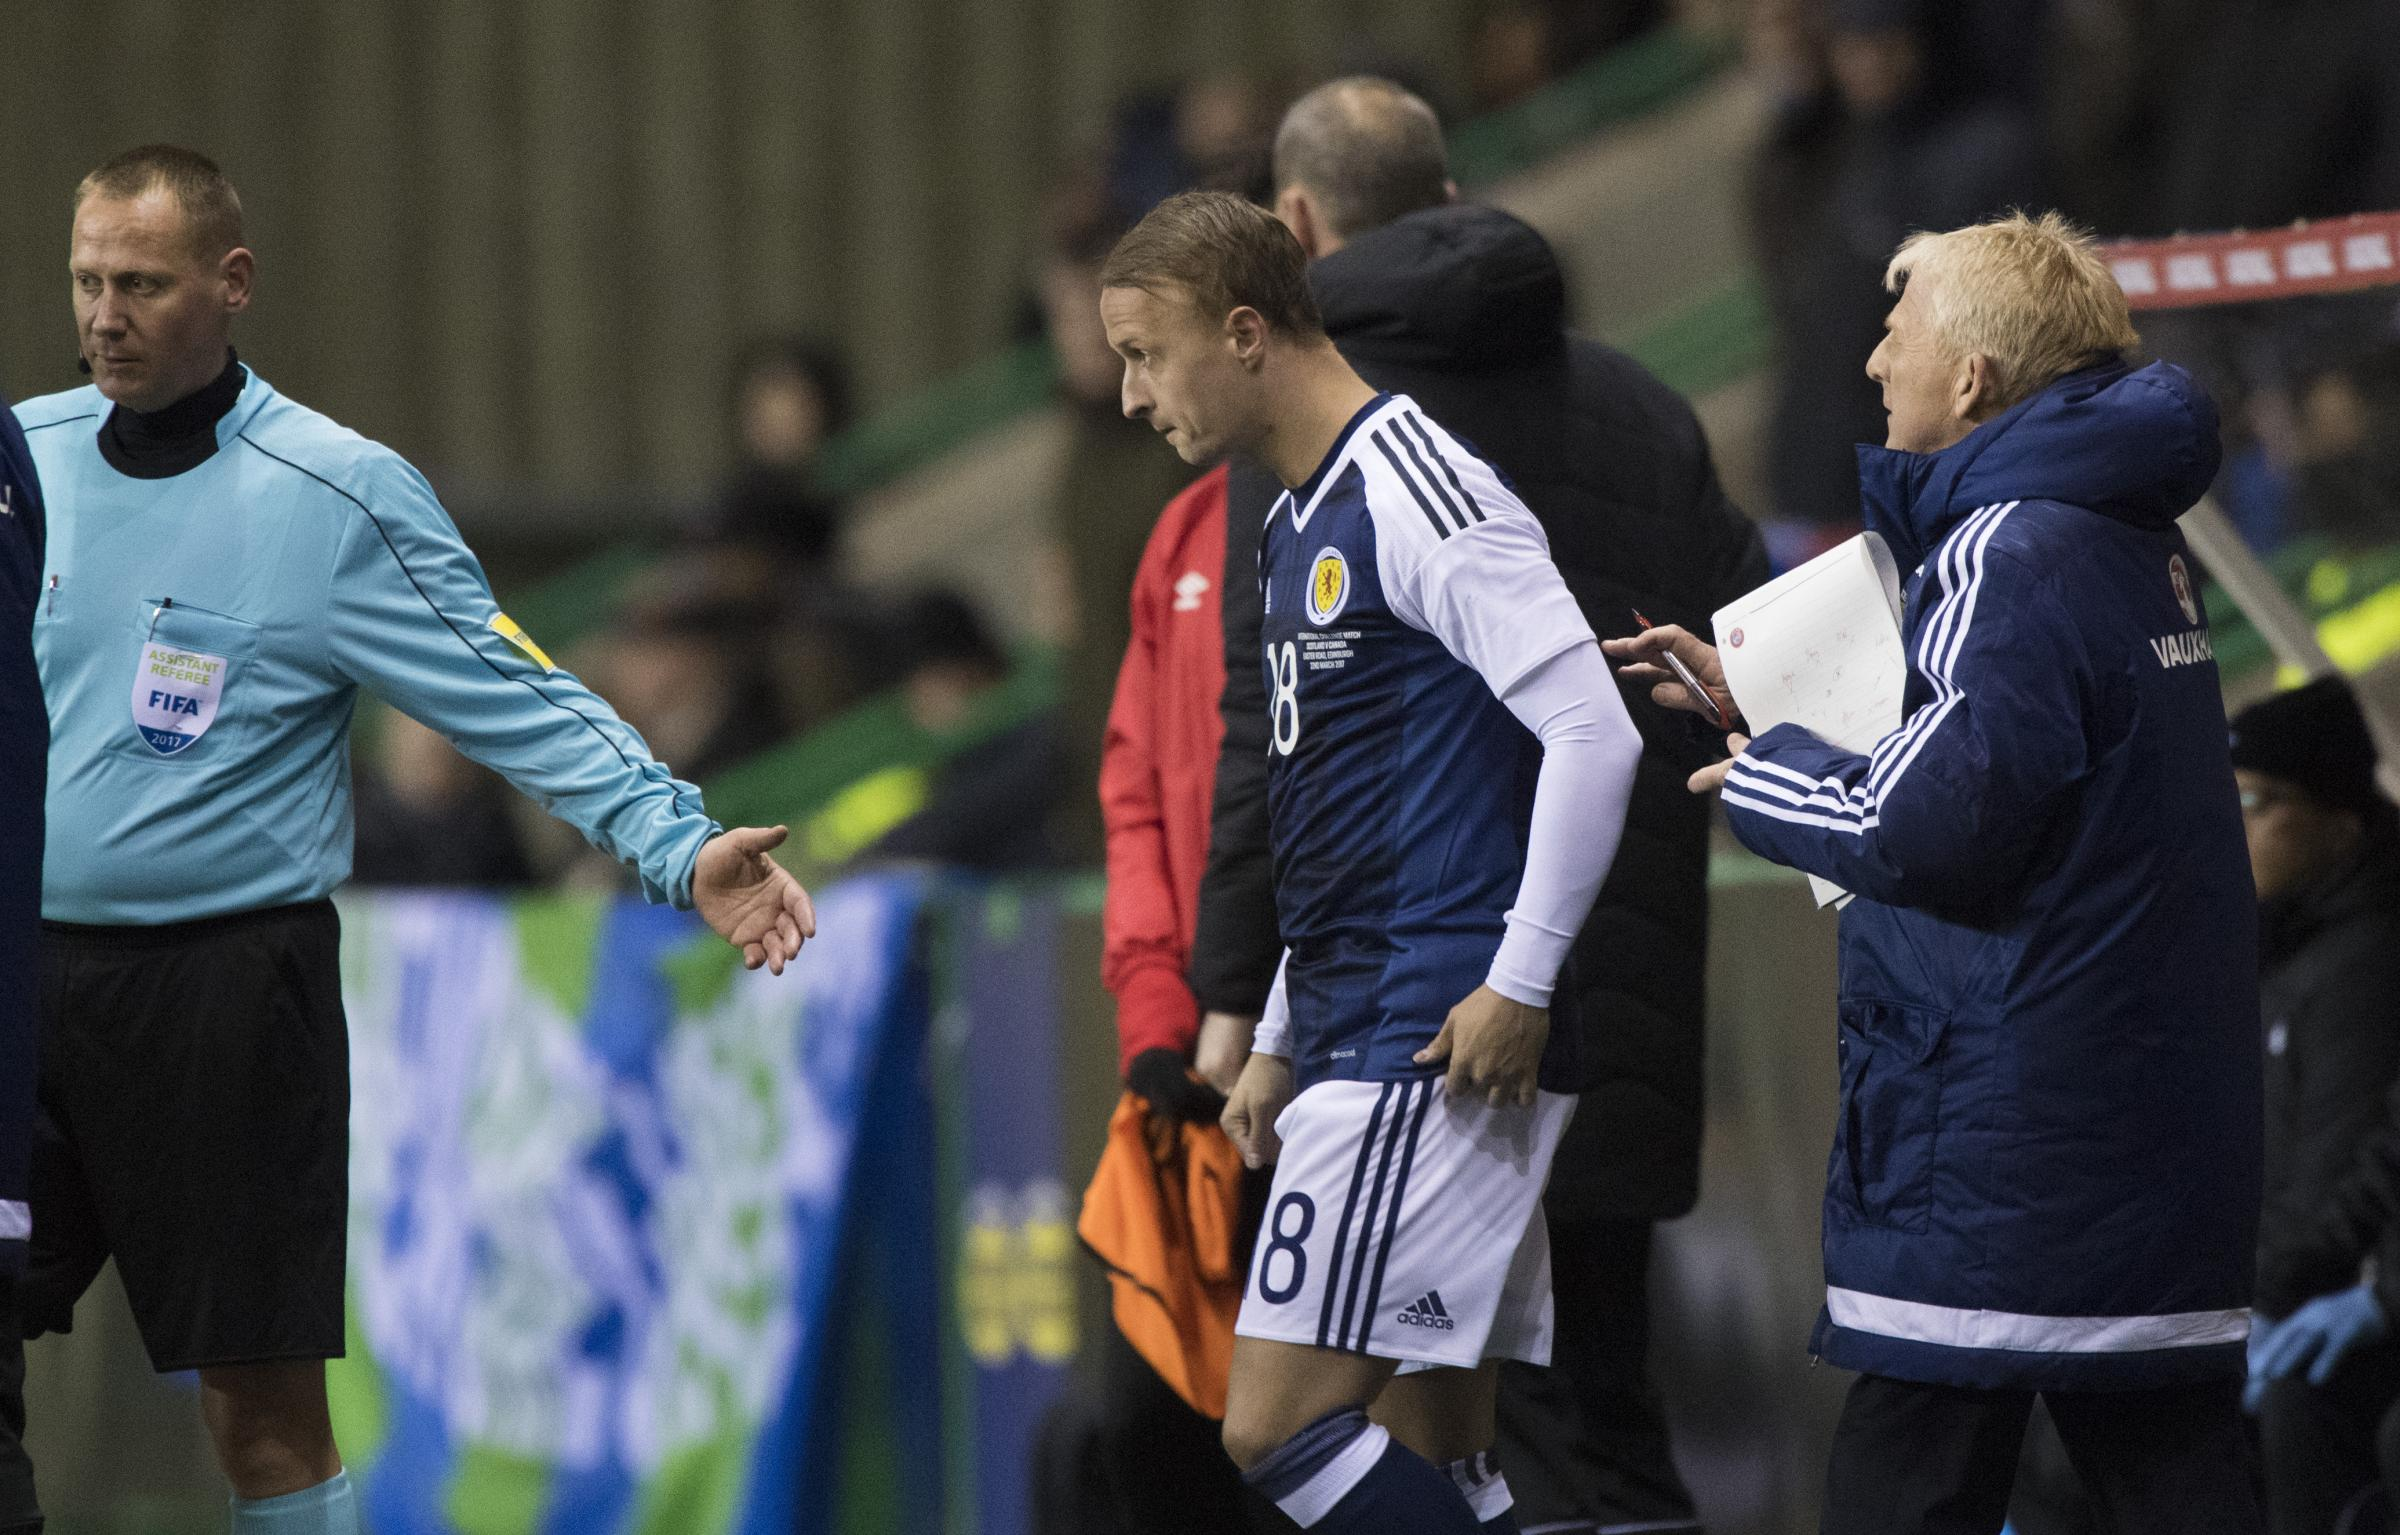 Leigh Griffiths can still be Scotland's bright hope despite being kept in the Celtic shadows